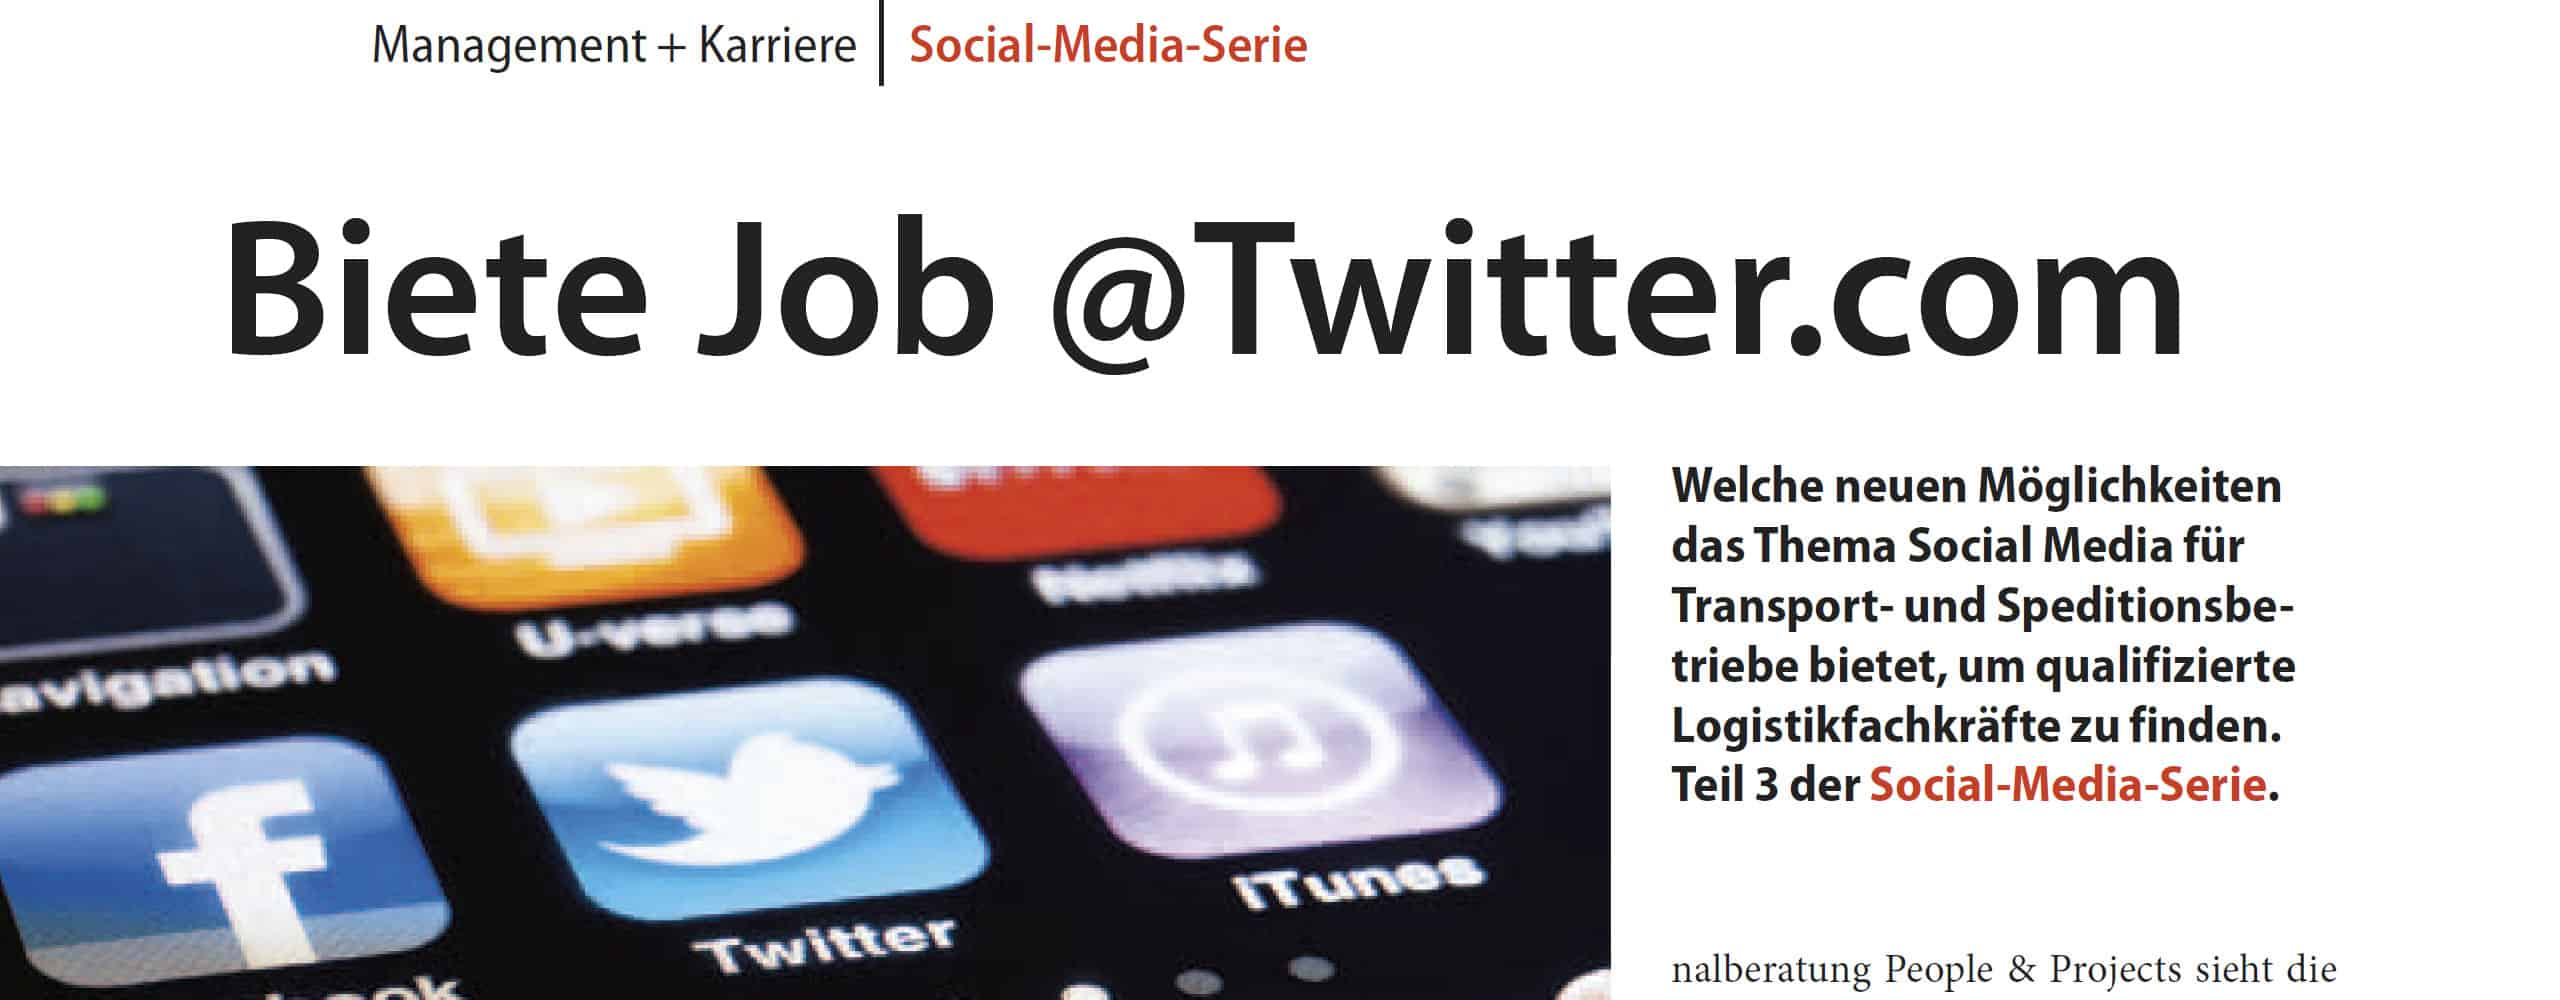 Biete Job at Twitter